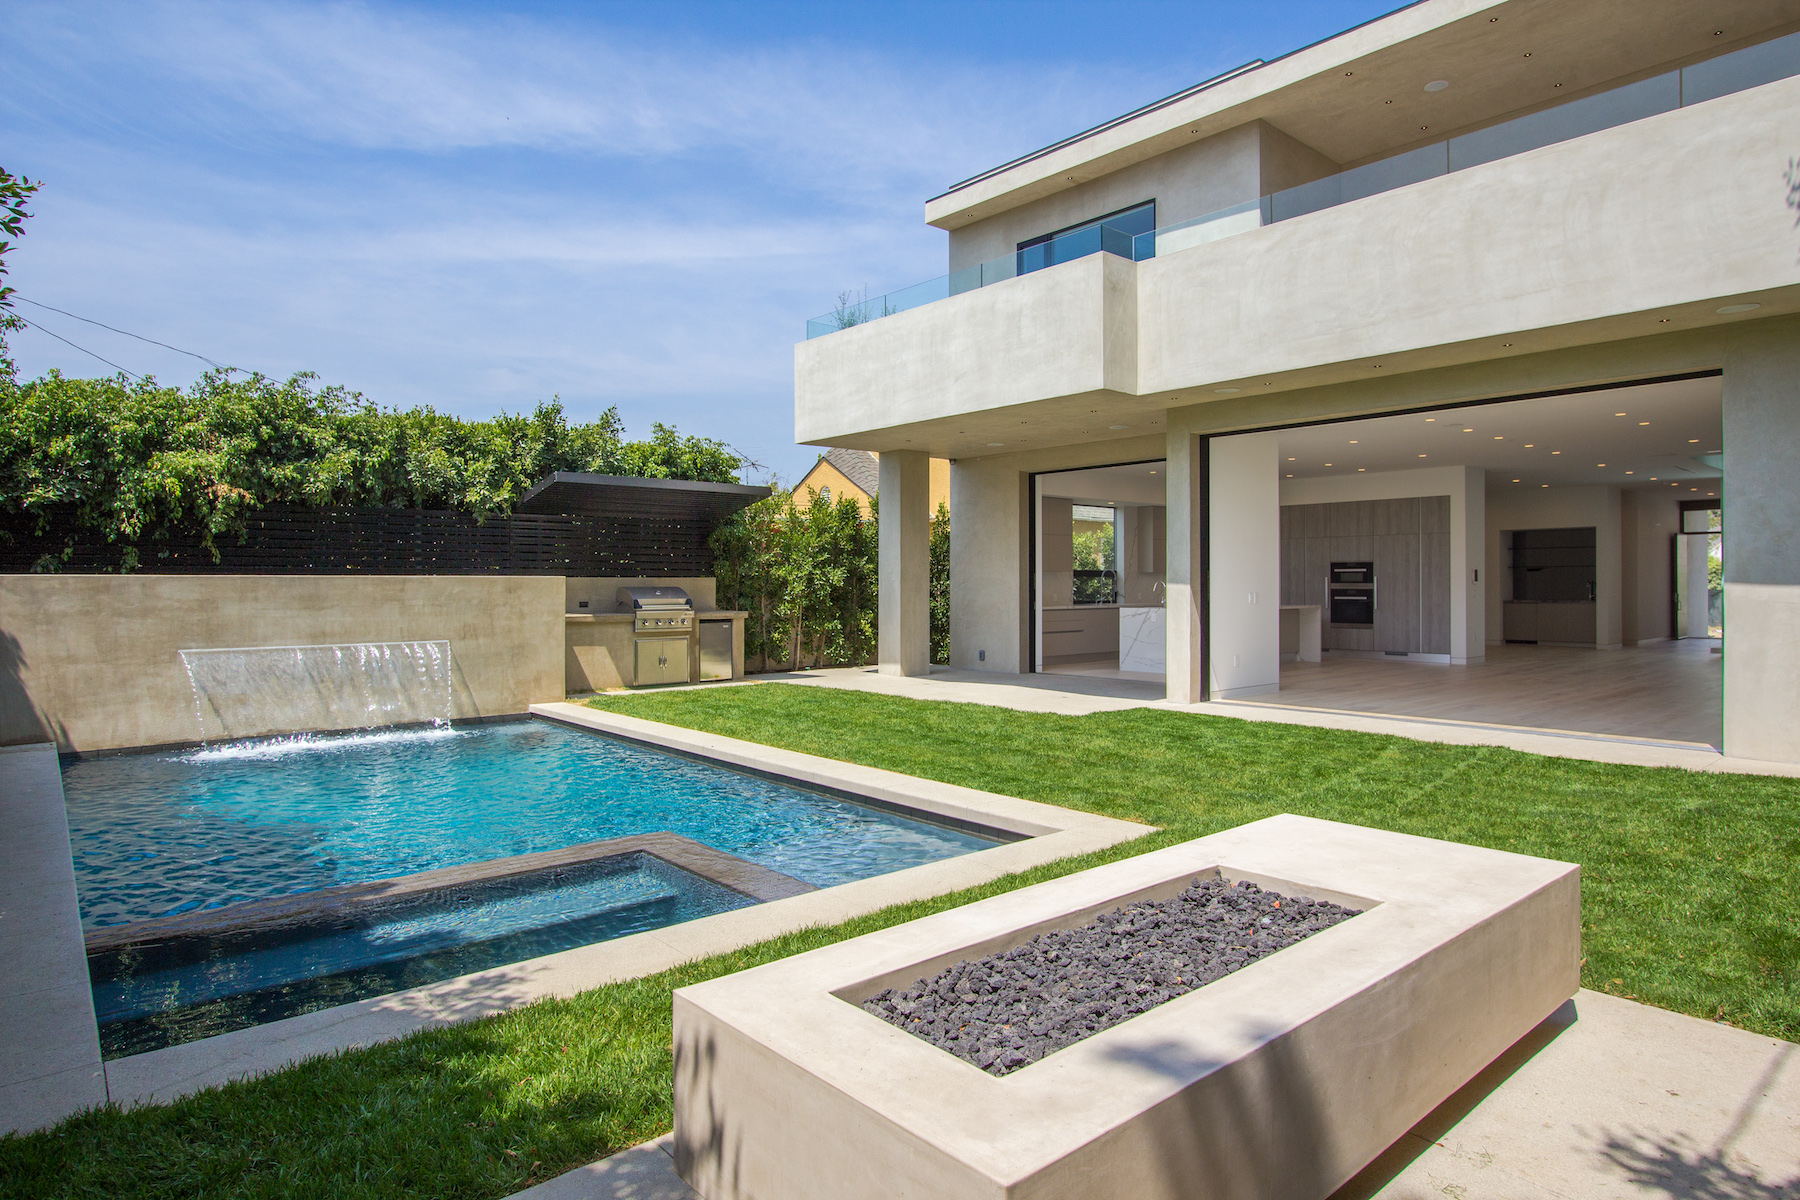 WestHollywood_Modern_8b_sm